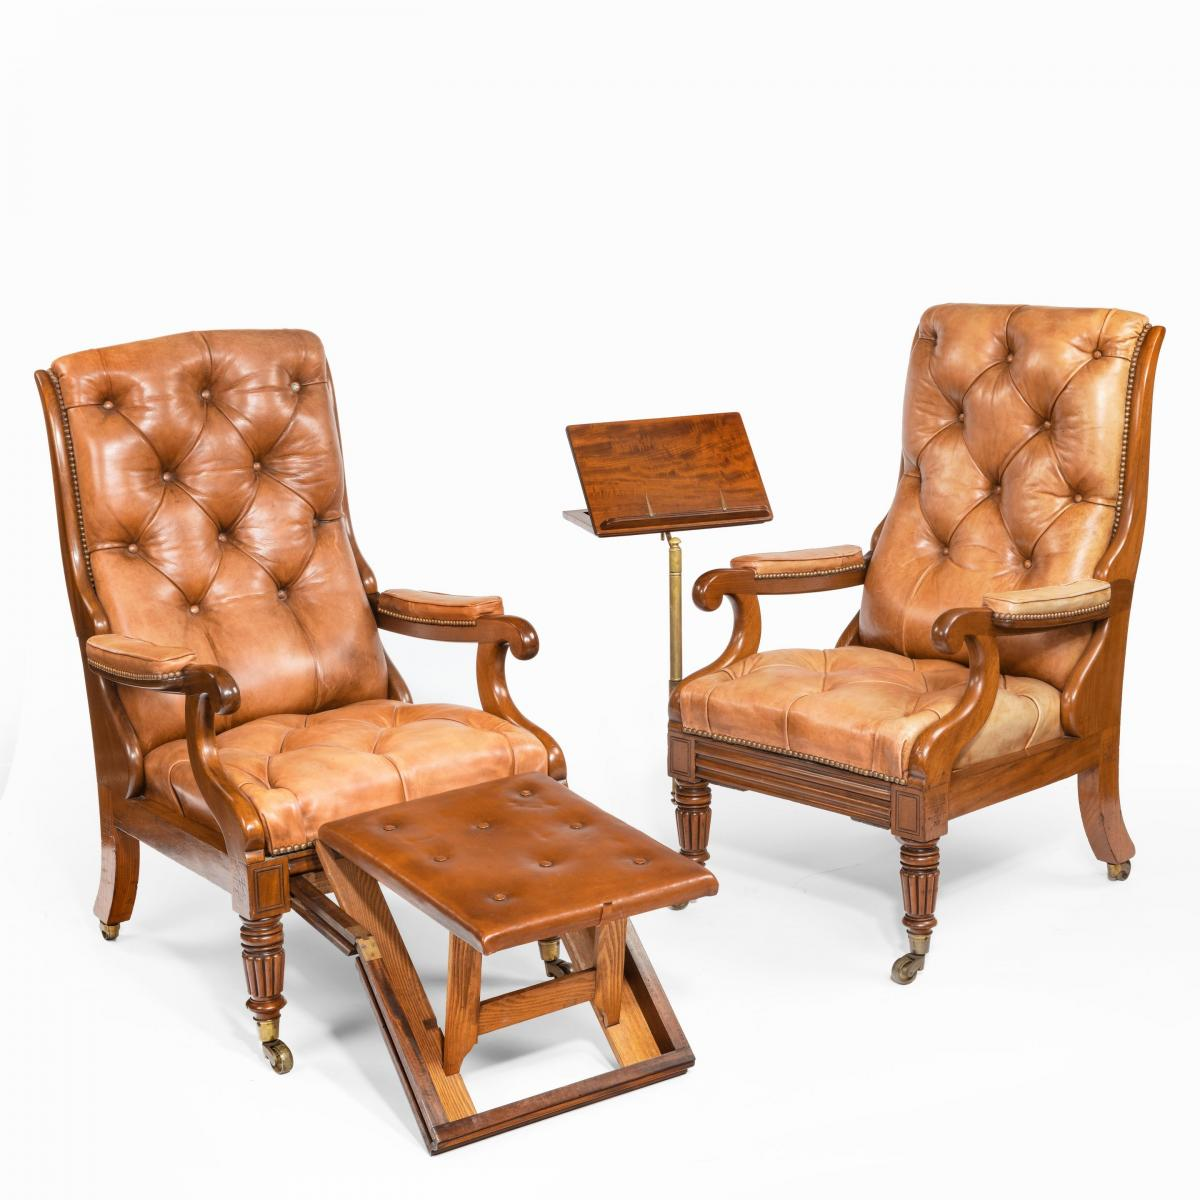 A pair of William IV adjustable mahogany library armchairs, by George Minter